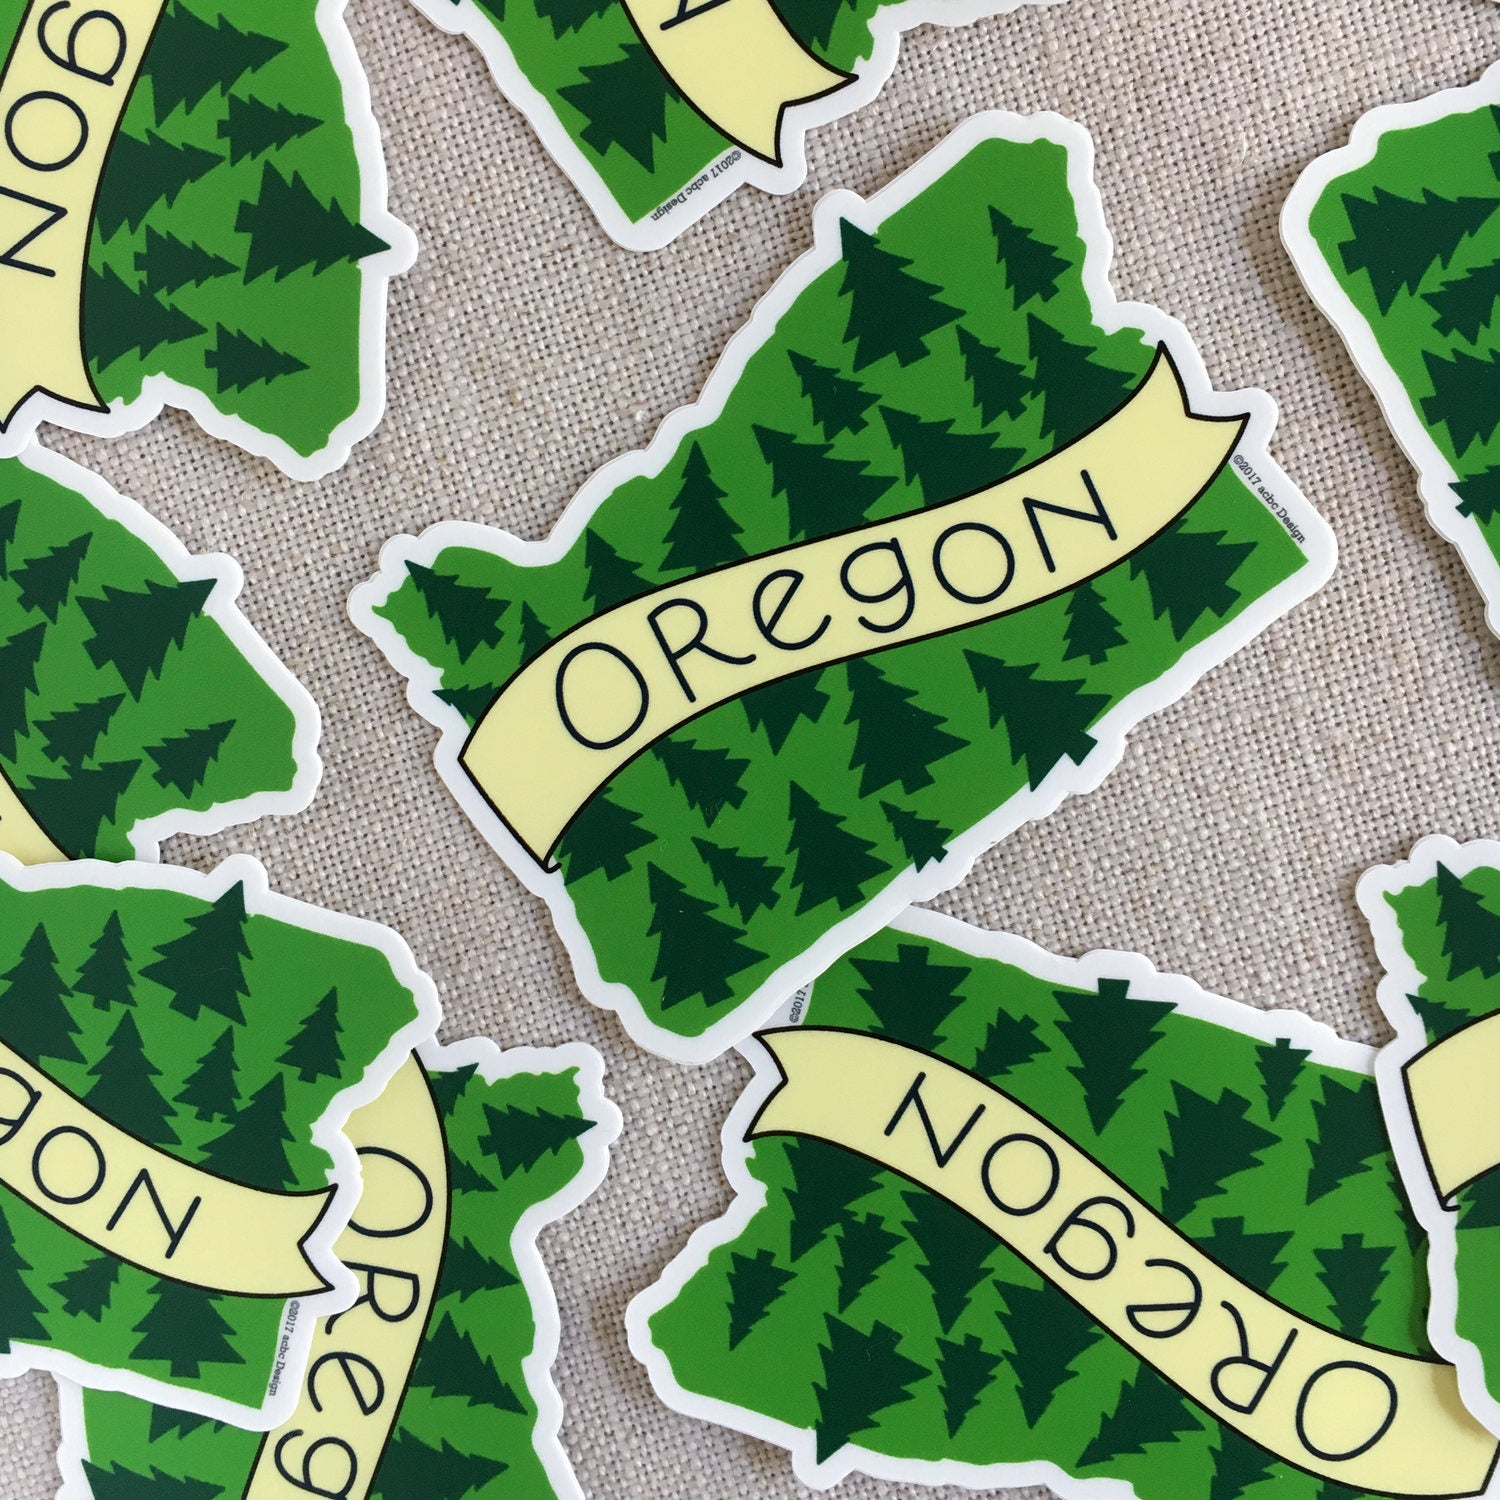 Oregon Trees Sticker